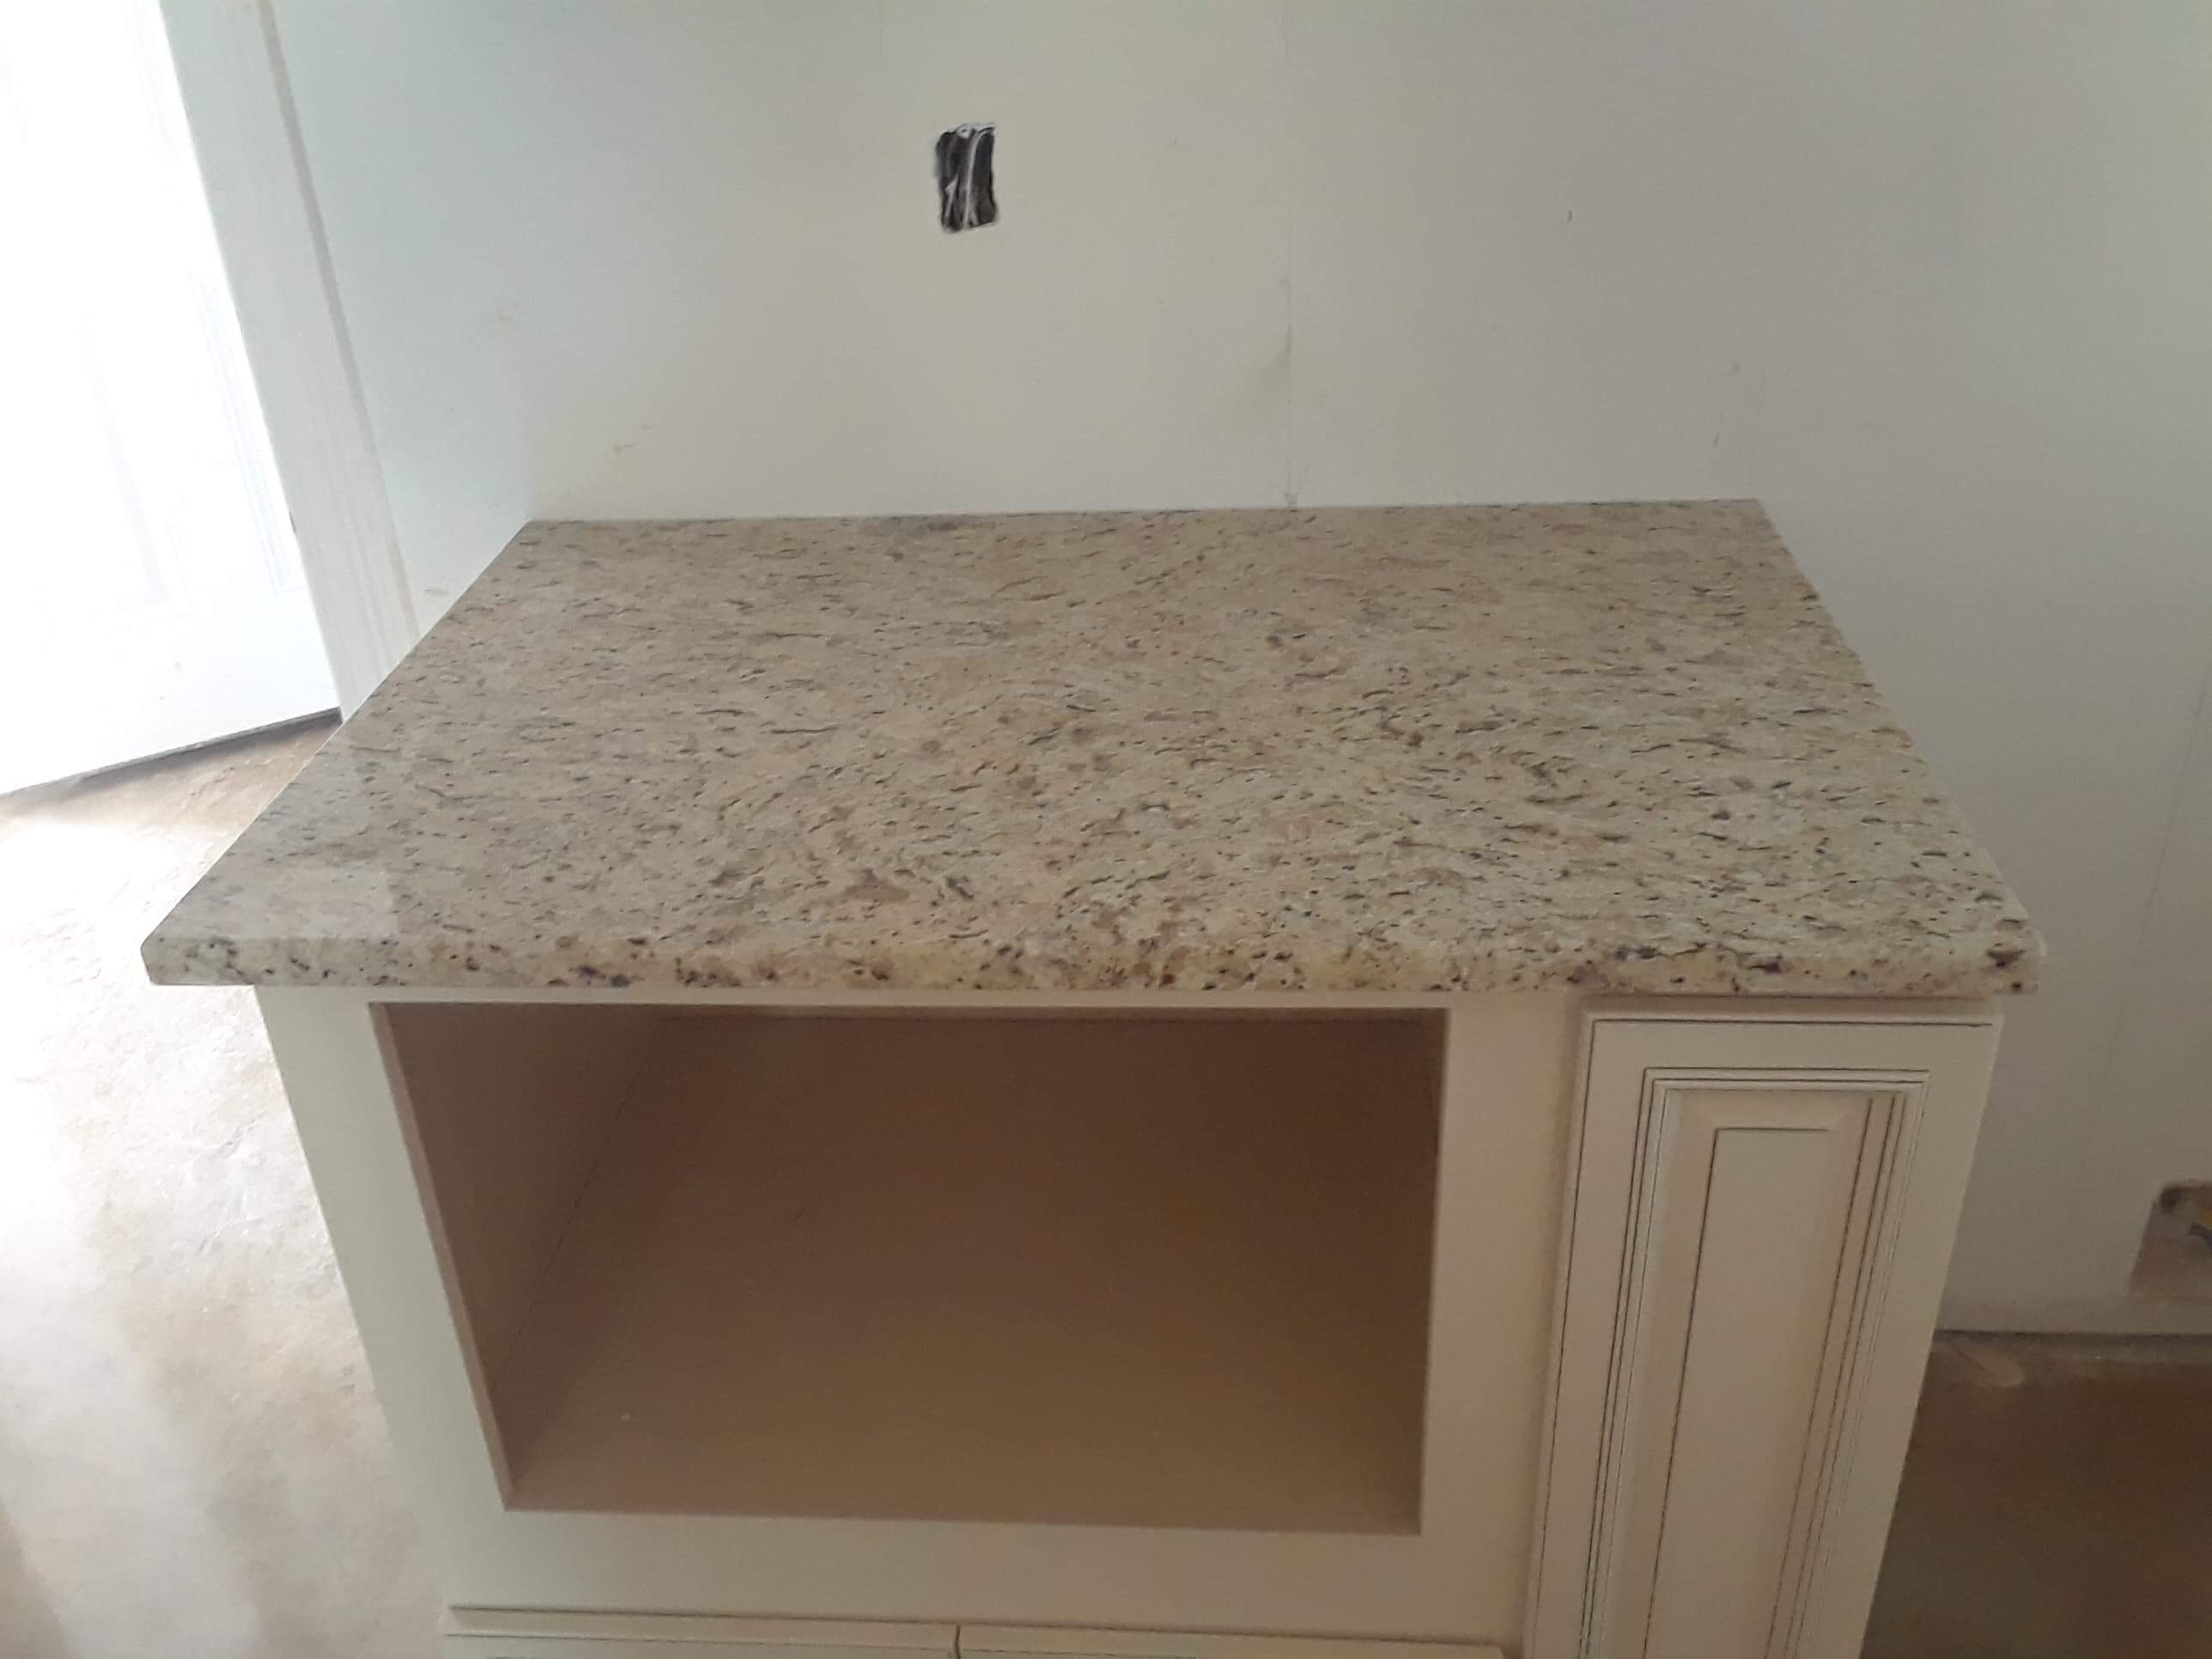 3cm Giallo Ornamental_Kitchen Countertop(4)_Liles